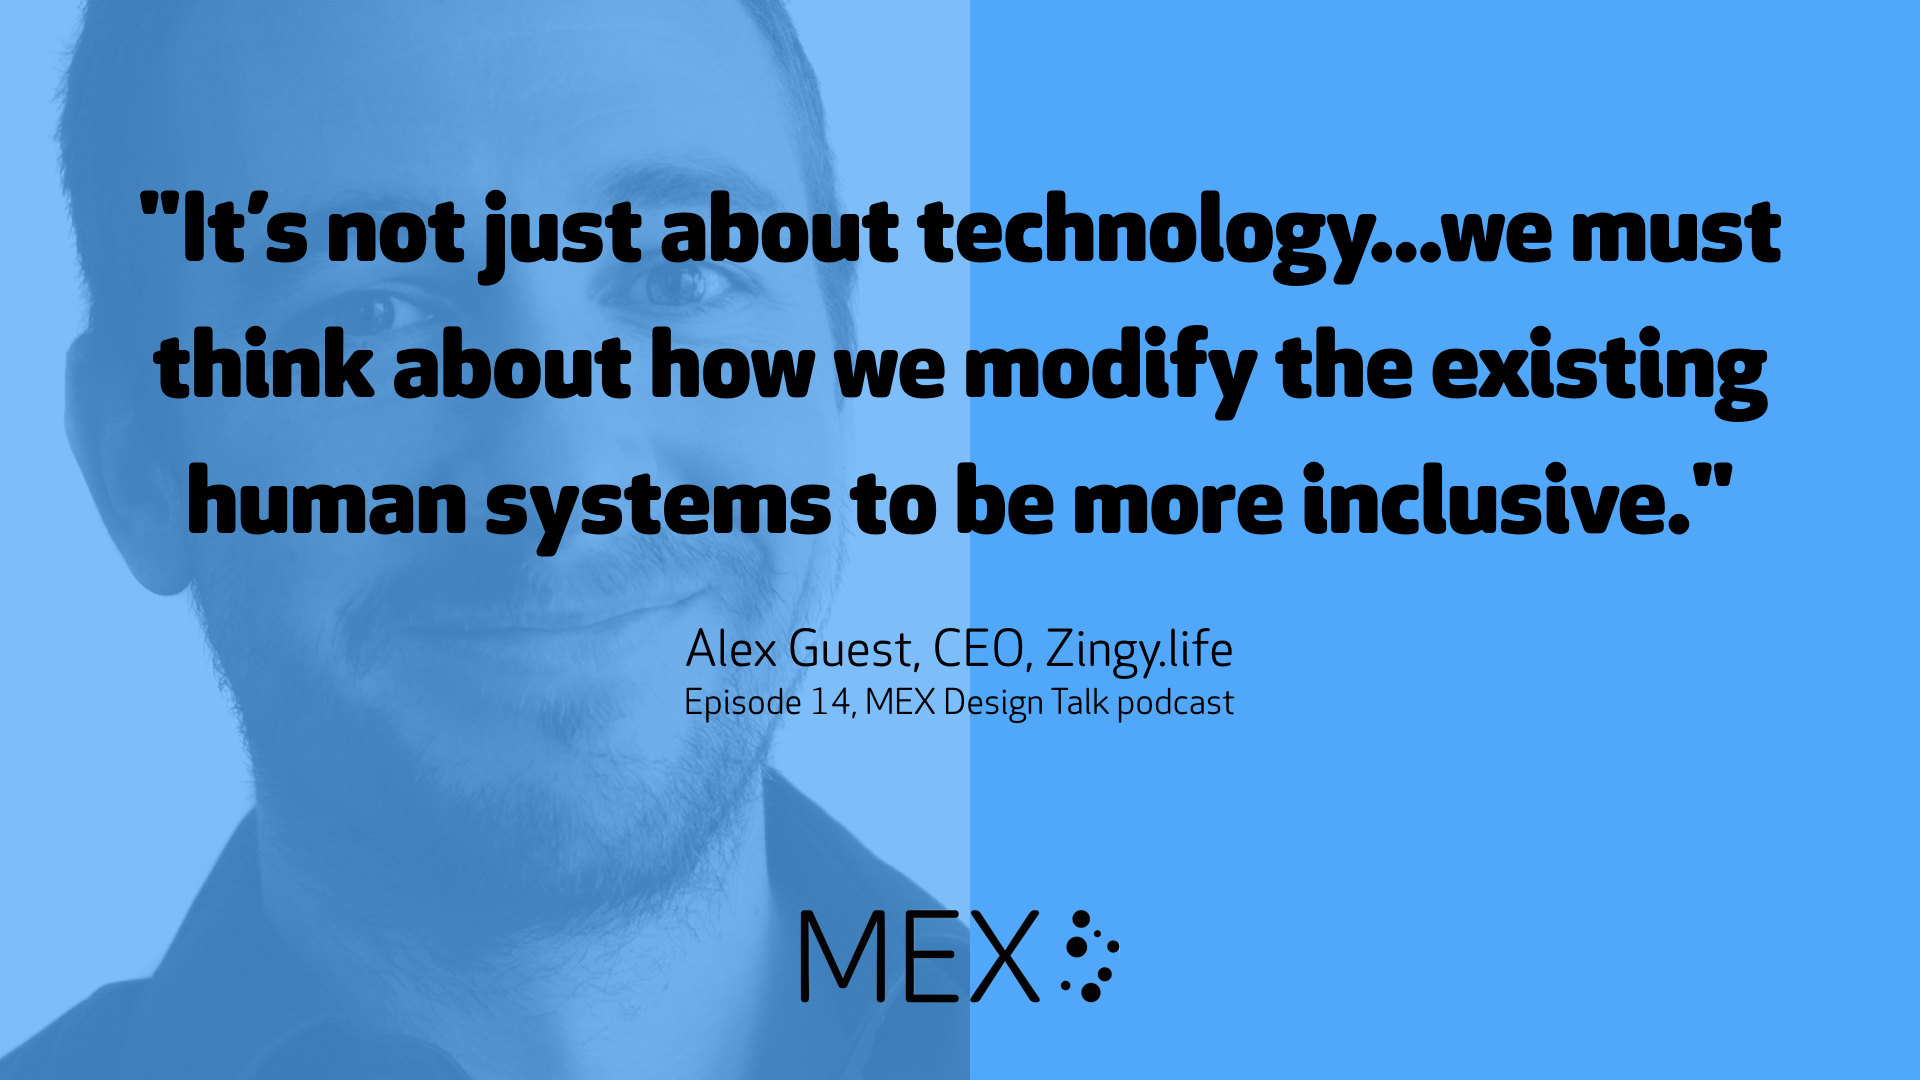 """It's not just about technology...we must think about how we modify the existing human systems to be more inclusive."" -- Alex Guest, CEO, Zingy.life Episode 14, MEX Design Talk podcast"